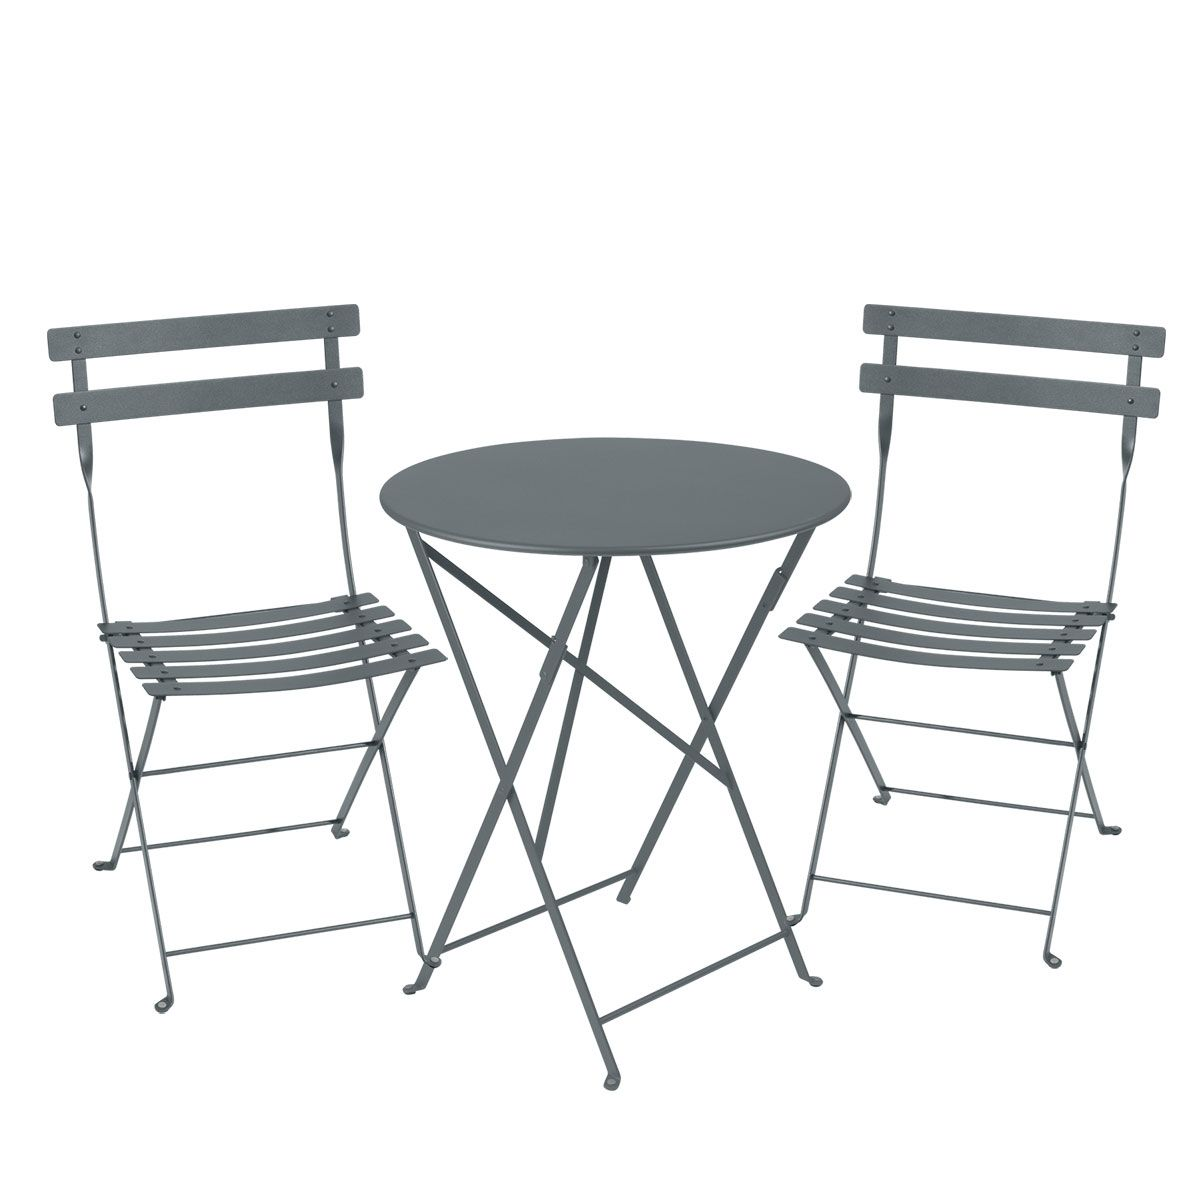 Bistro Setting 60cm Table And 2 Chairs Bistro Outdoor Furniture Jardin